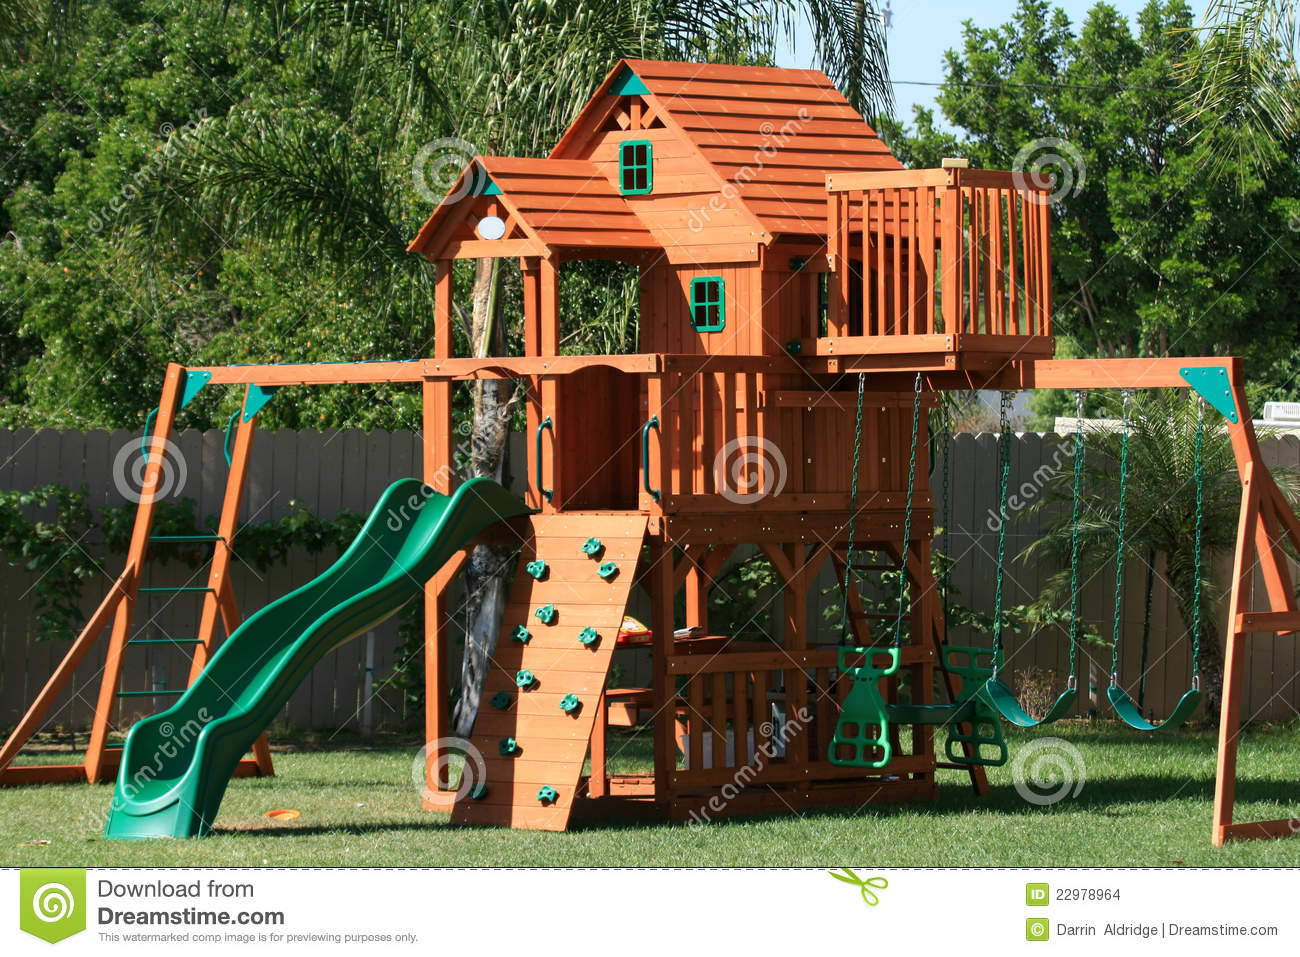 Play House Swings And Slide Stock Images - Image: 22978964